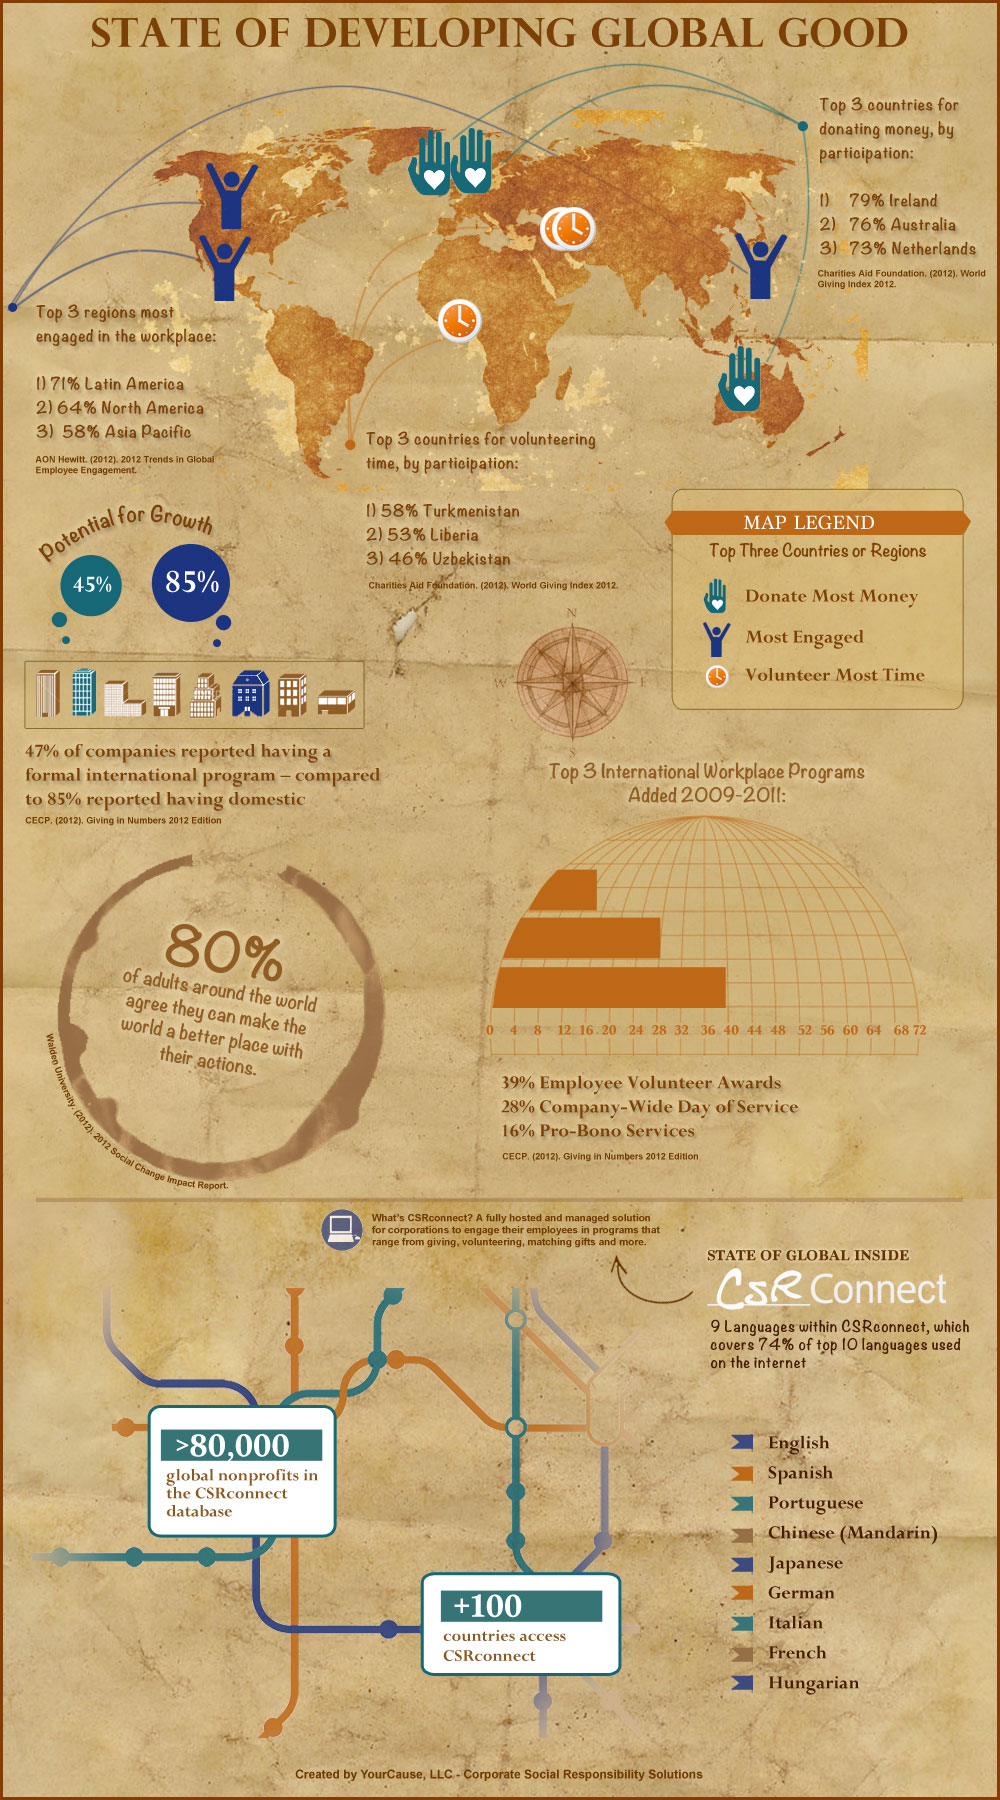 State of Developing Global Good Infographic by YourCause, LLC